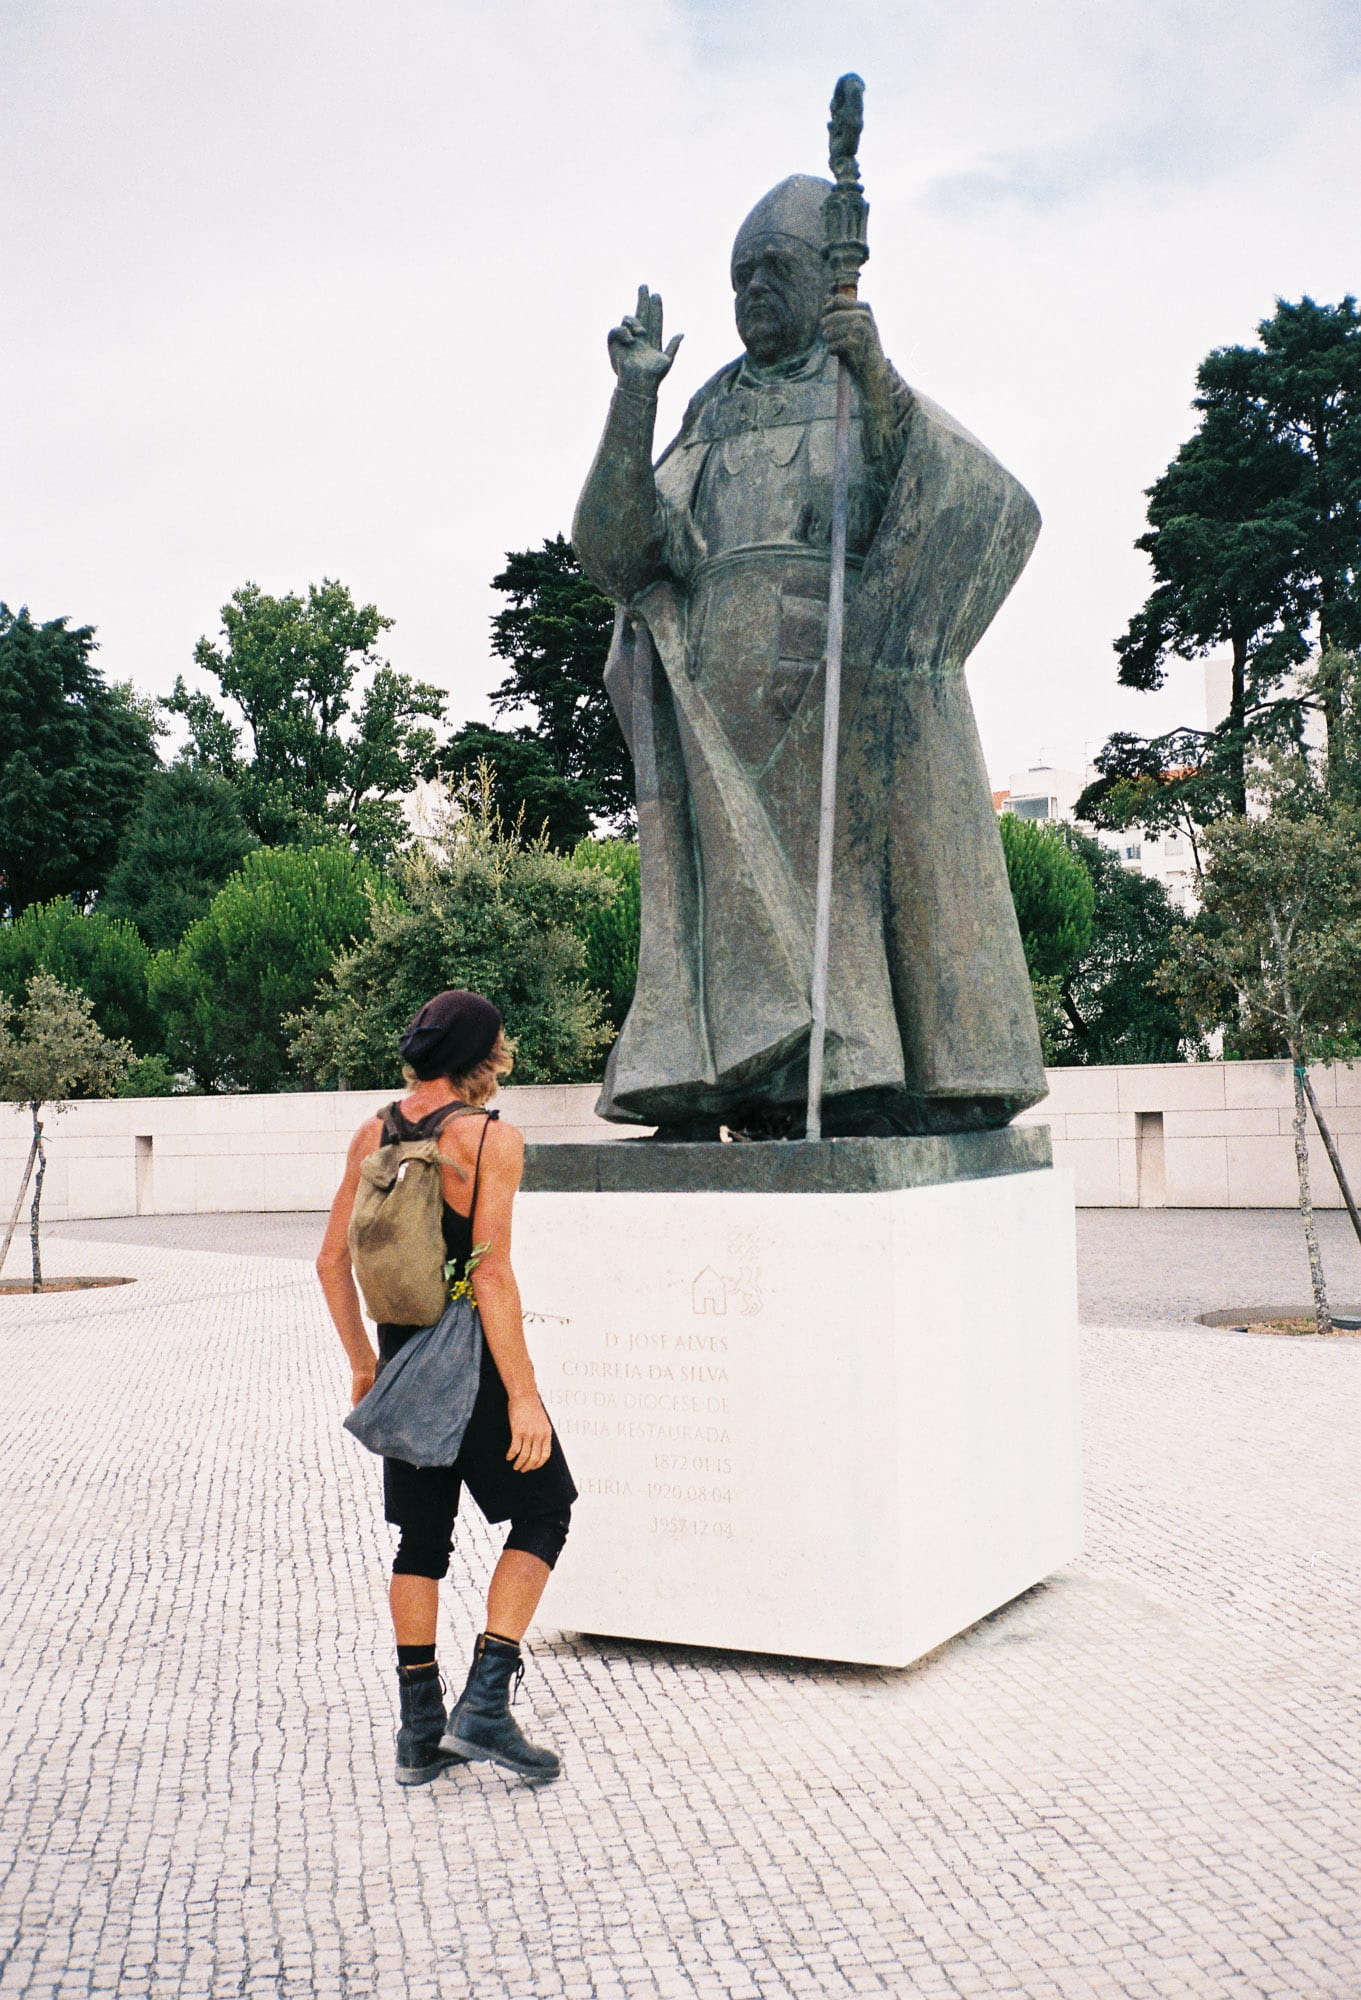 7. August 2019, Al Justrel und Fátima, Portugal